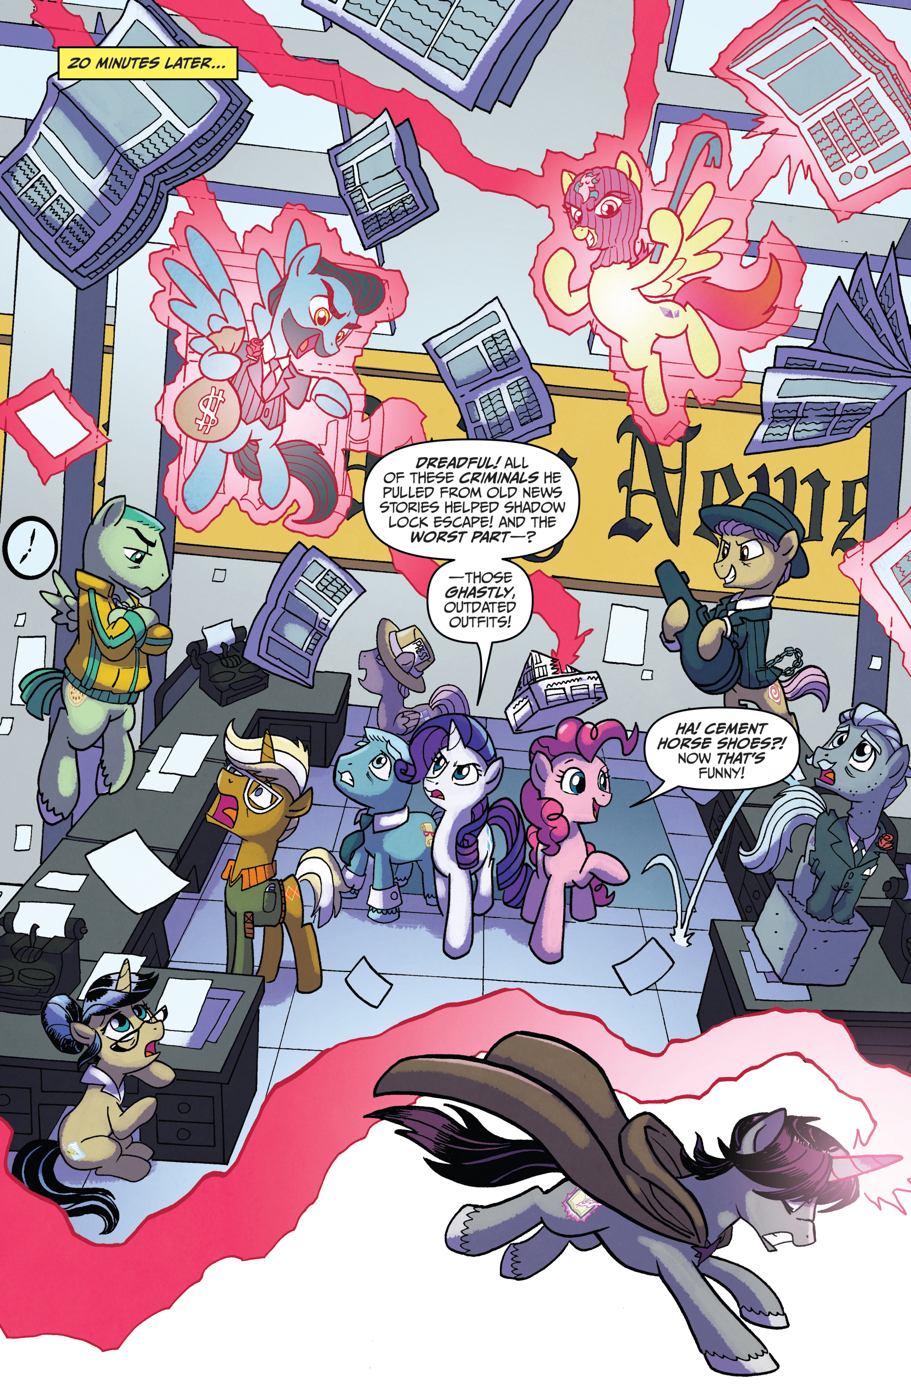 Read online My Little Pony: Friendship is Magic comic -  Issue #52 - 13